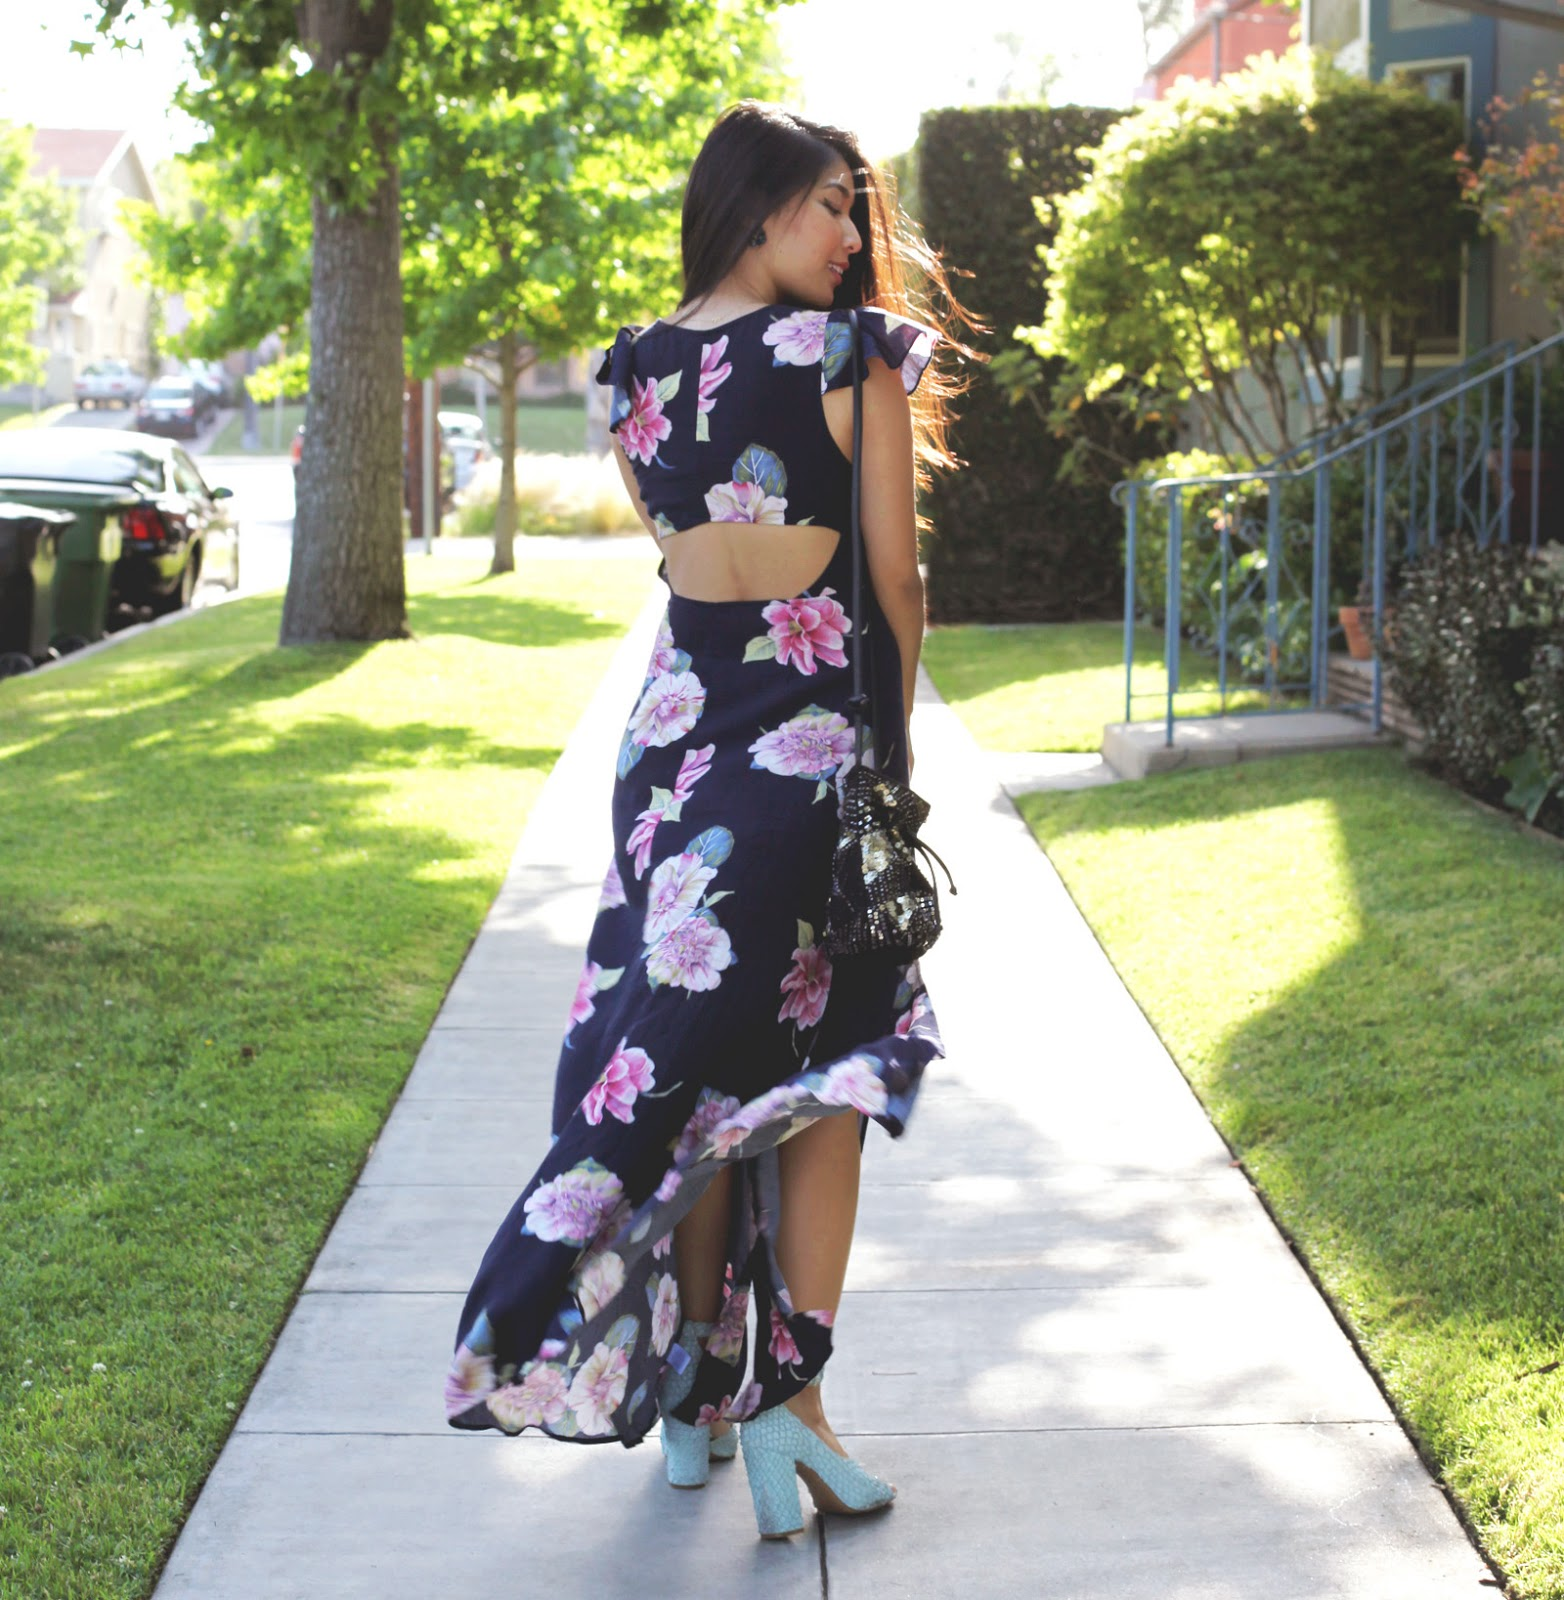 Stephanie Liu of Honey & Silk wearing Reformed by Reformation dress, Urban Outfitters bag, 3.1 Phillip Lim heels, Tacori City Lights earrings, and BesoBeso by Luka cuff